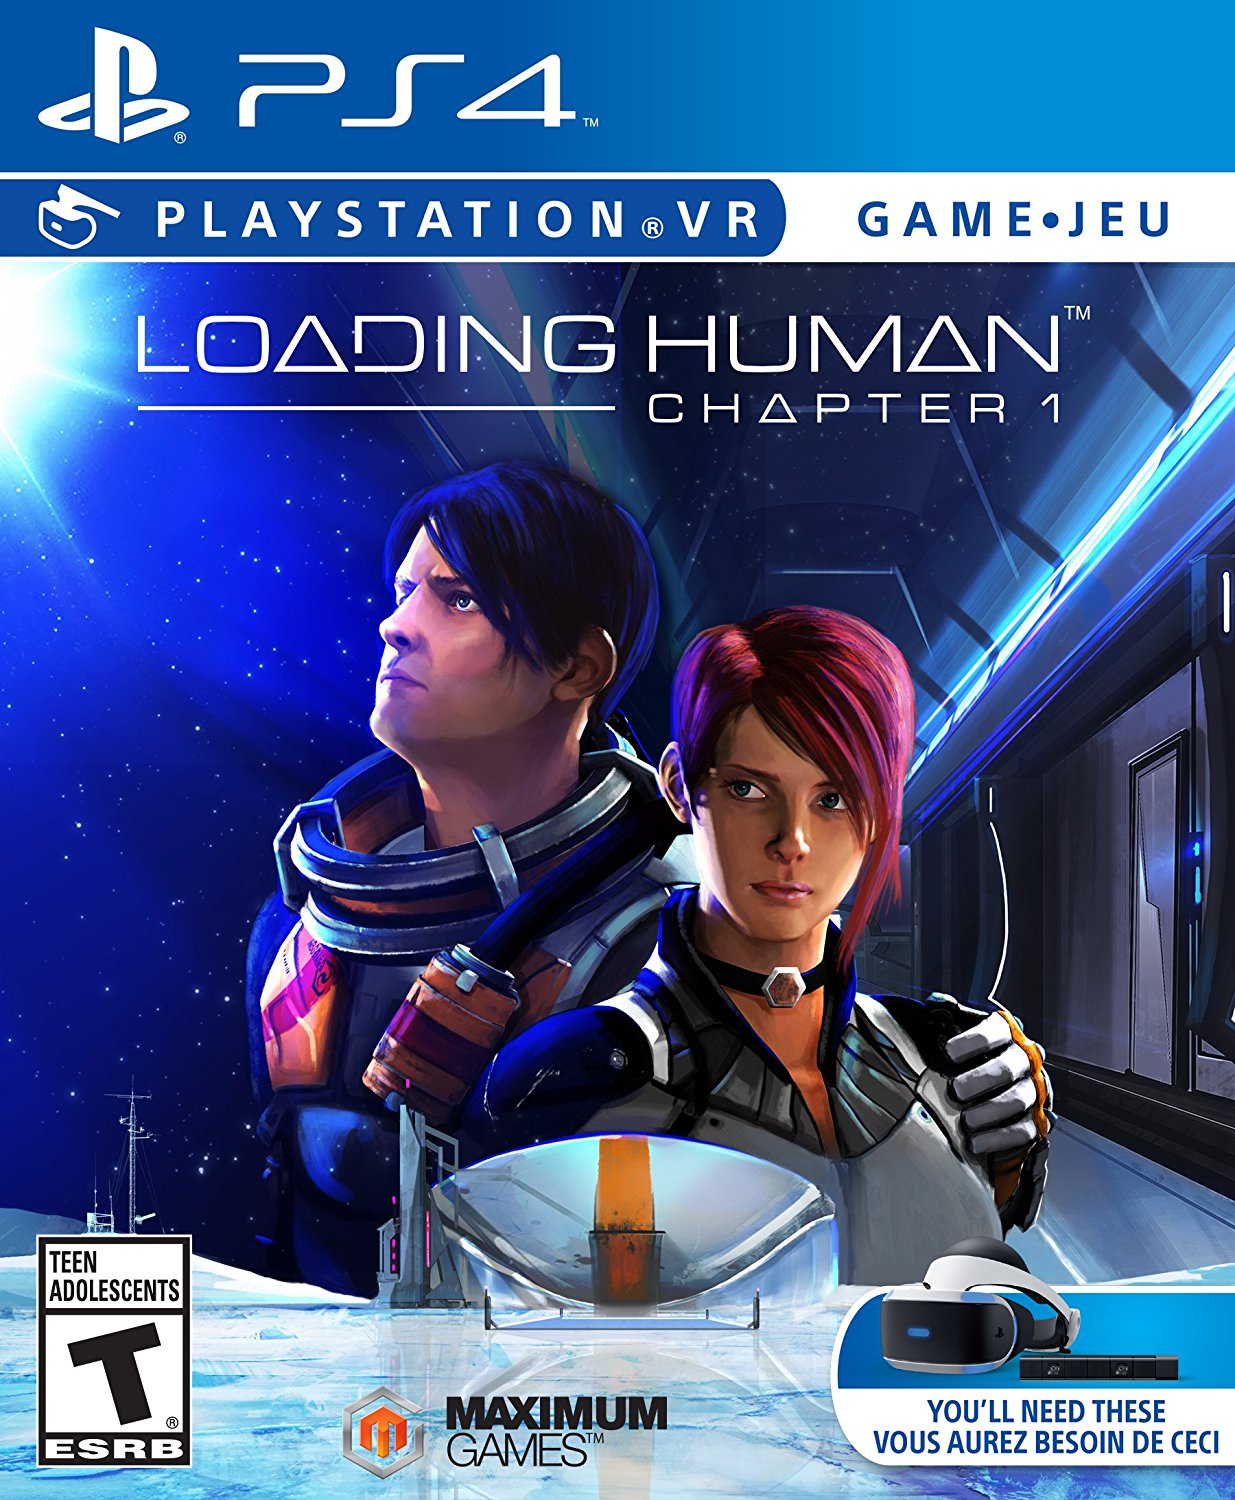 PS4 PSVR Loading Human